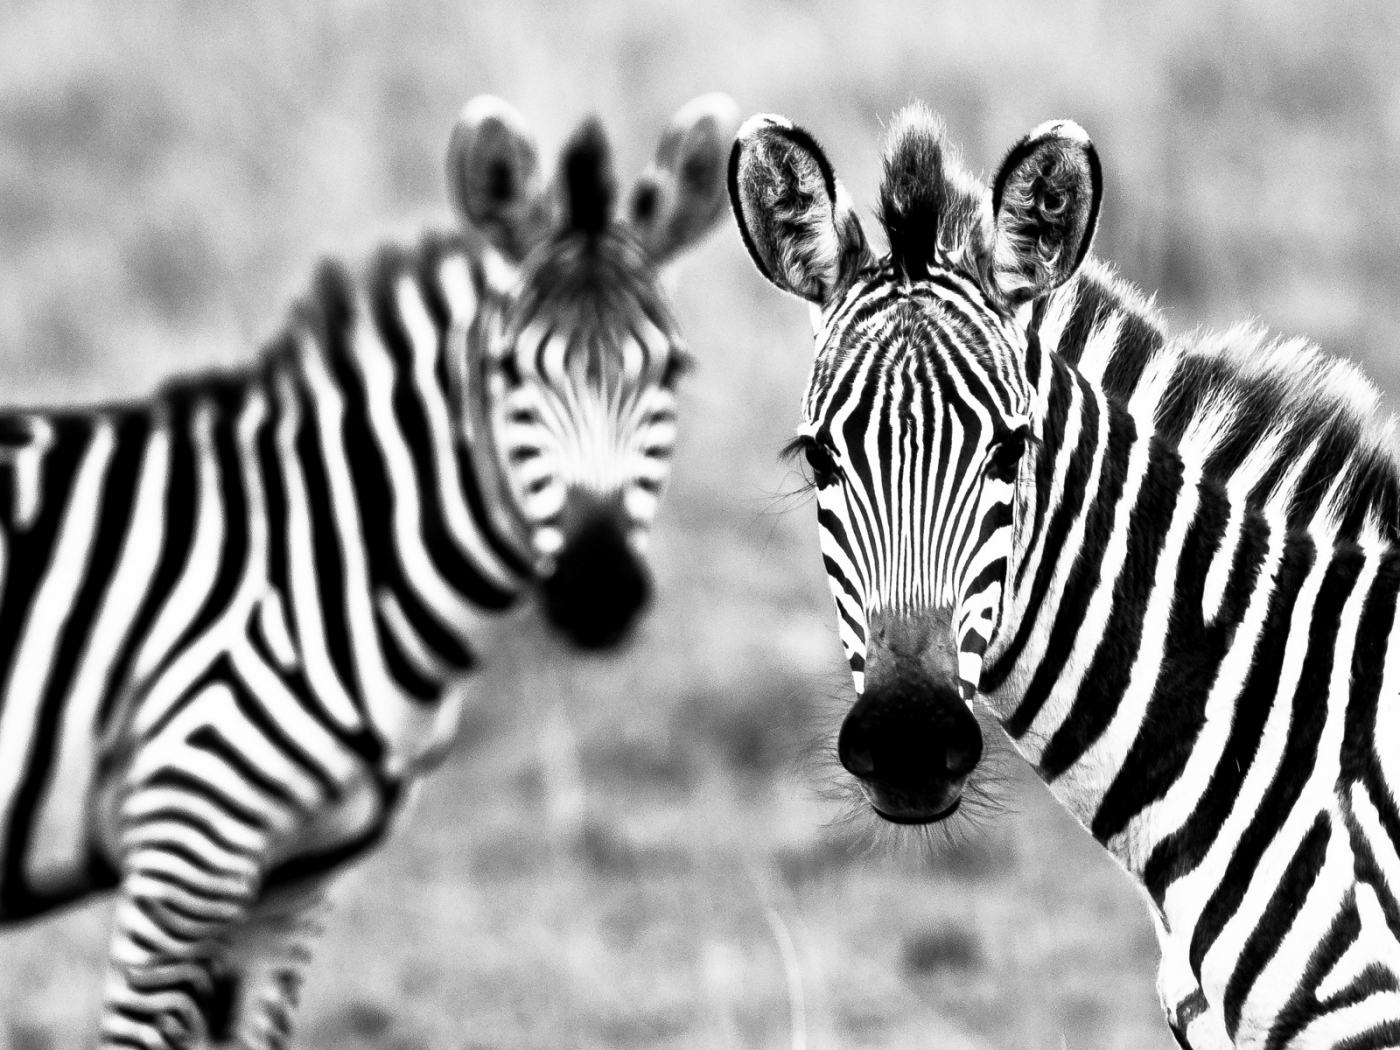 46524 download wallpaper Animals, Zebra screensavers and pictures for free